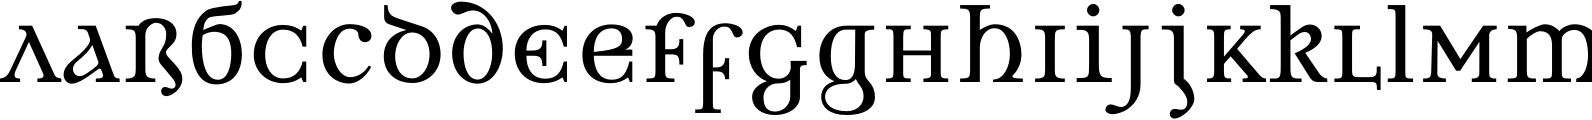 Brogue Regular Font